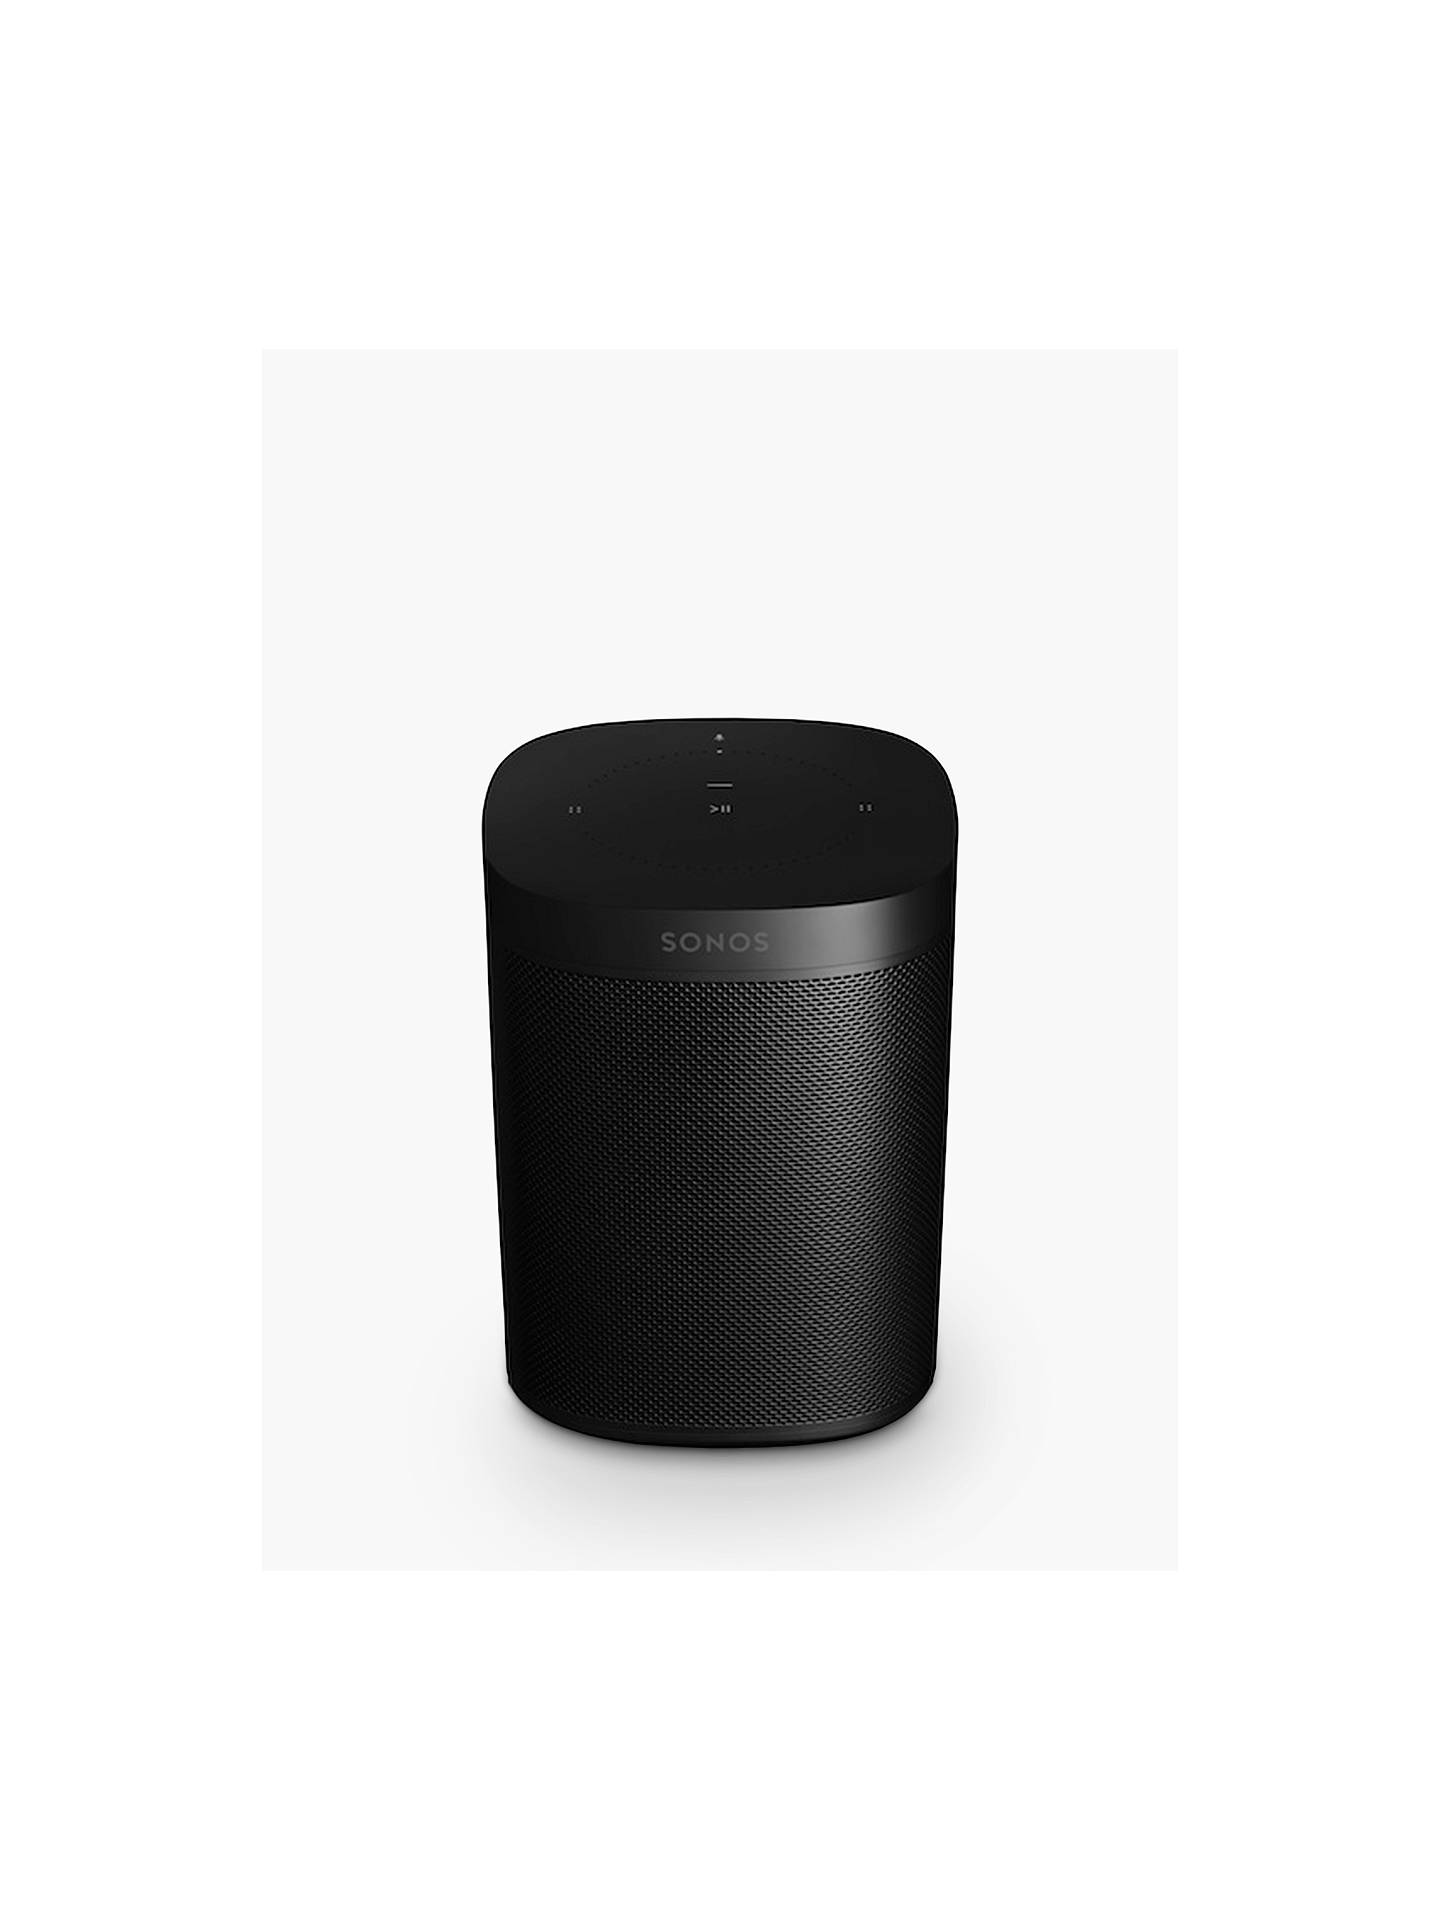 Buy Sonos One Voice Controlled Smart Speaker, Black Online at johnlewis.com